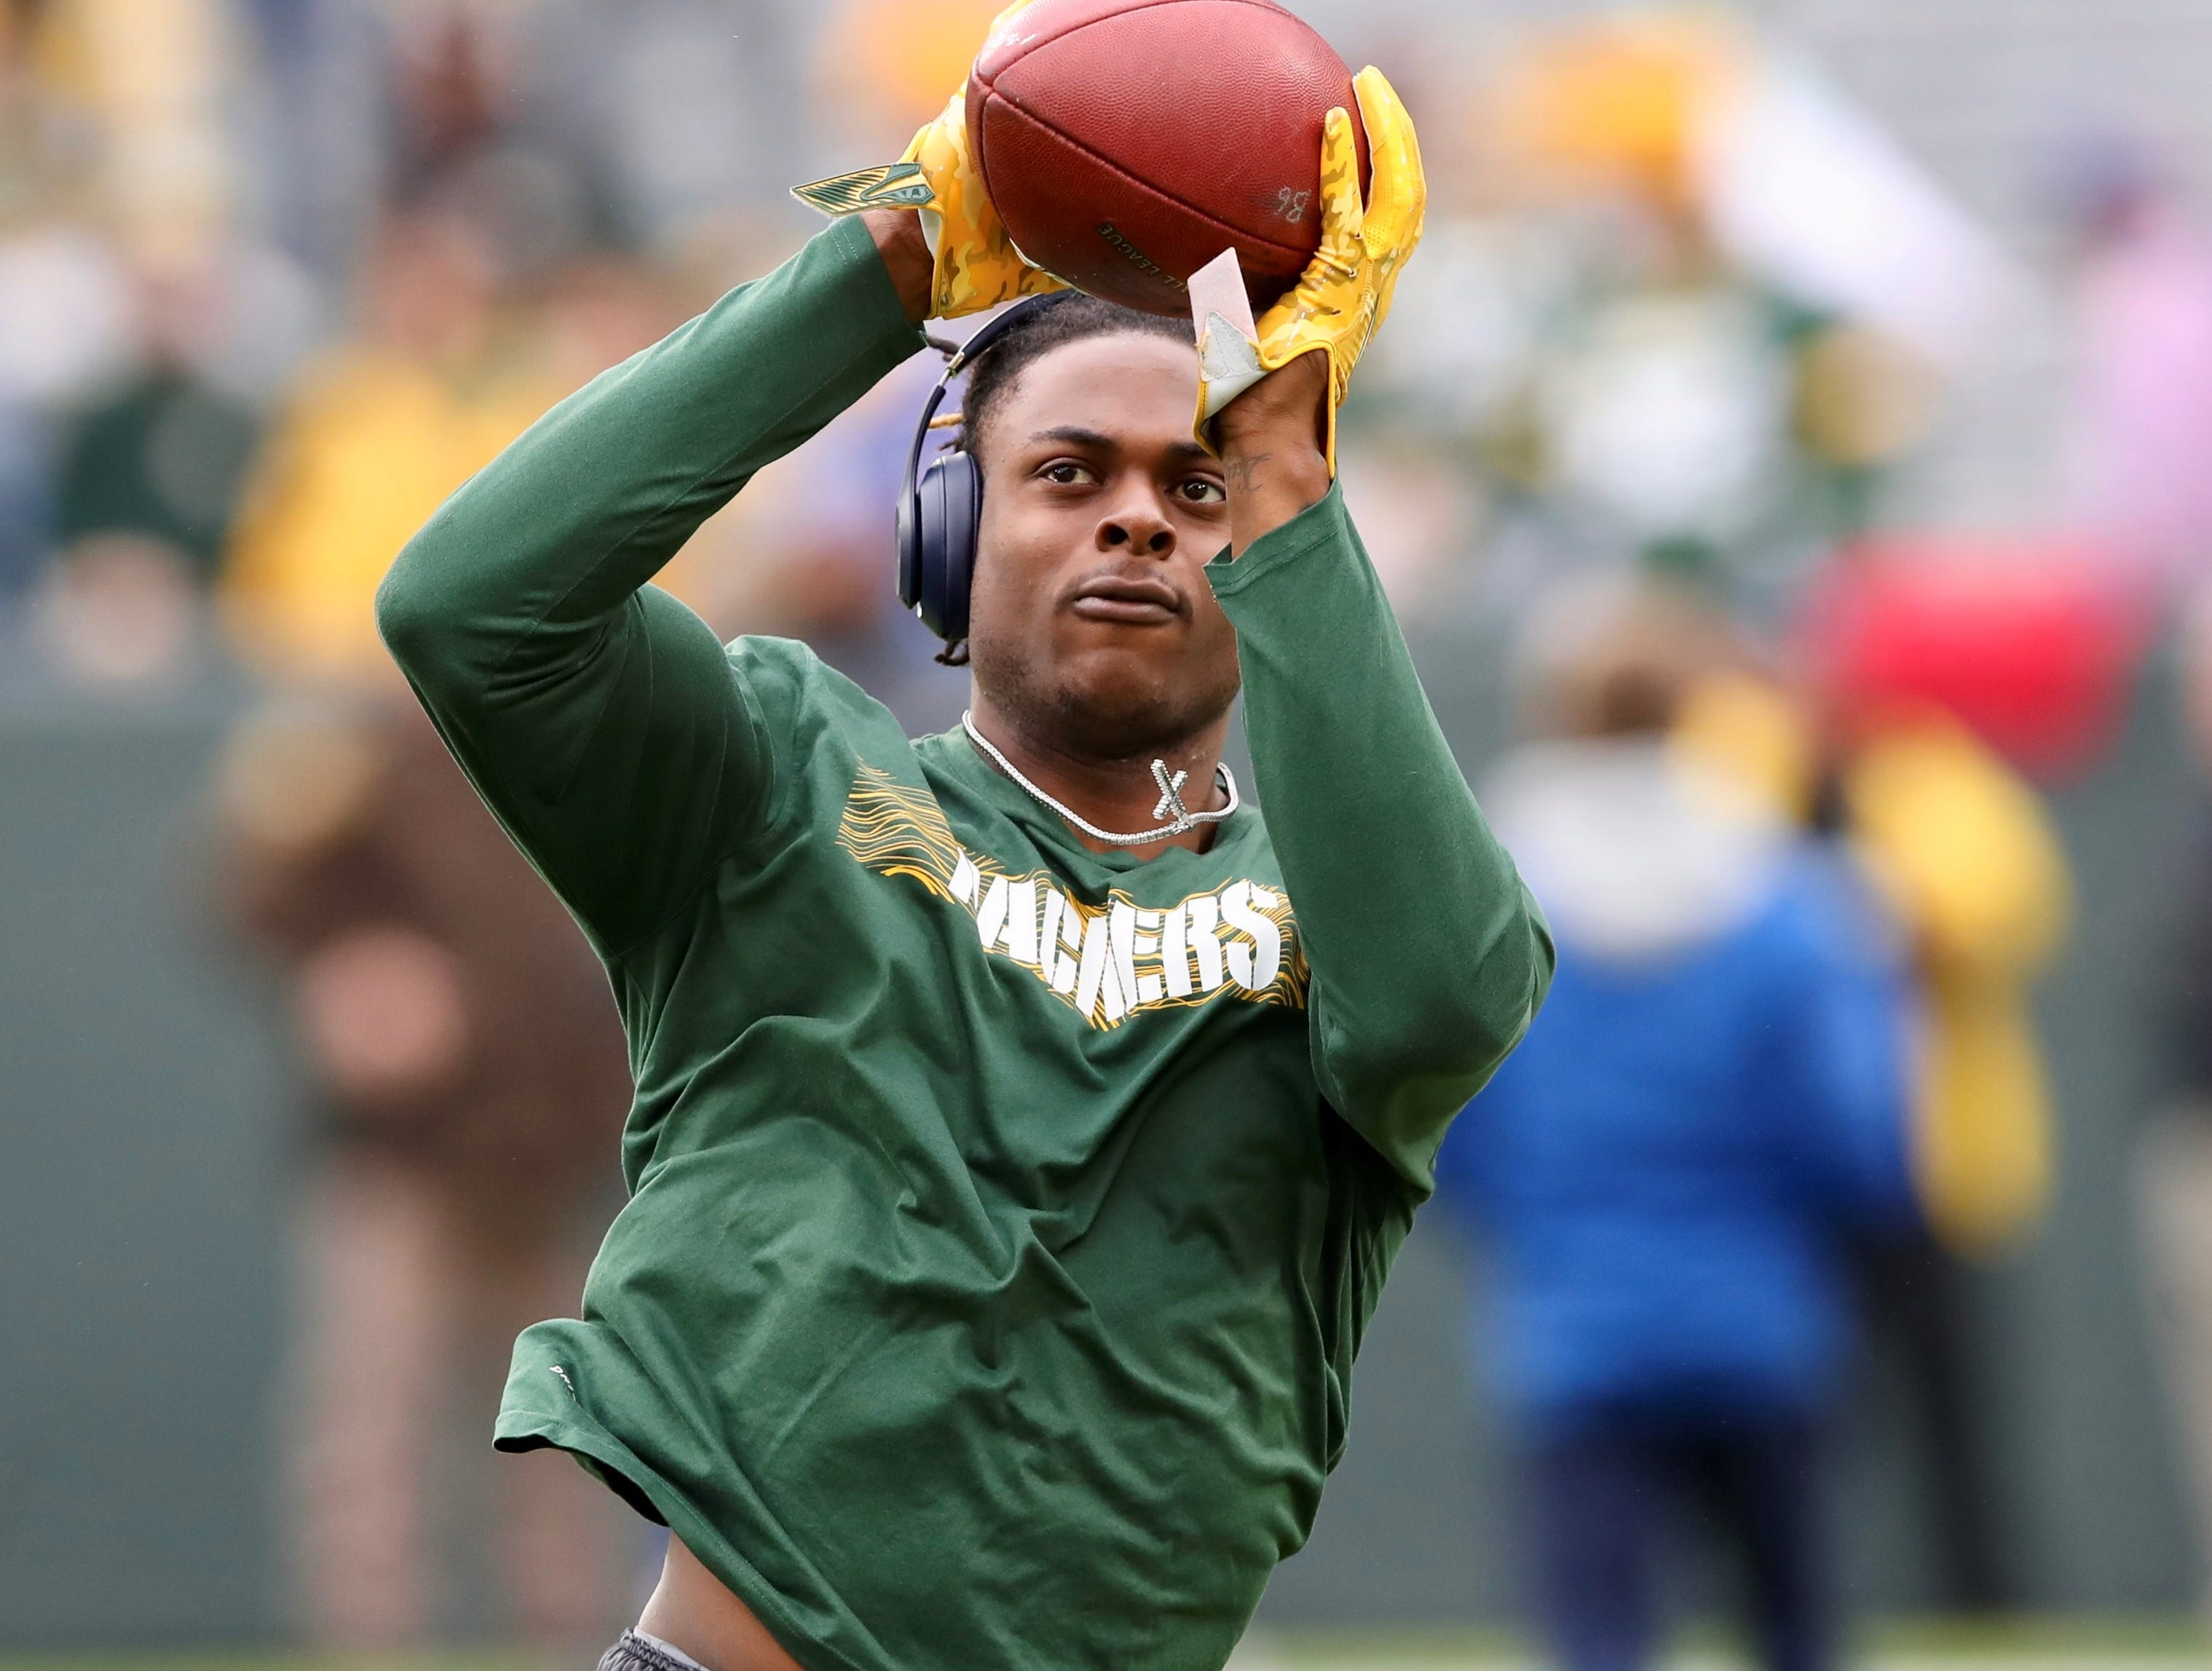 Green Bay Packers receiver Davante Adams warms up before the game against Buffalo at Lambeau Field September 30, 2018.